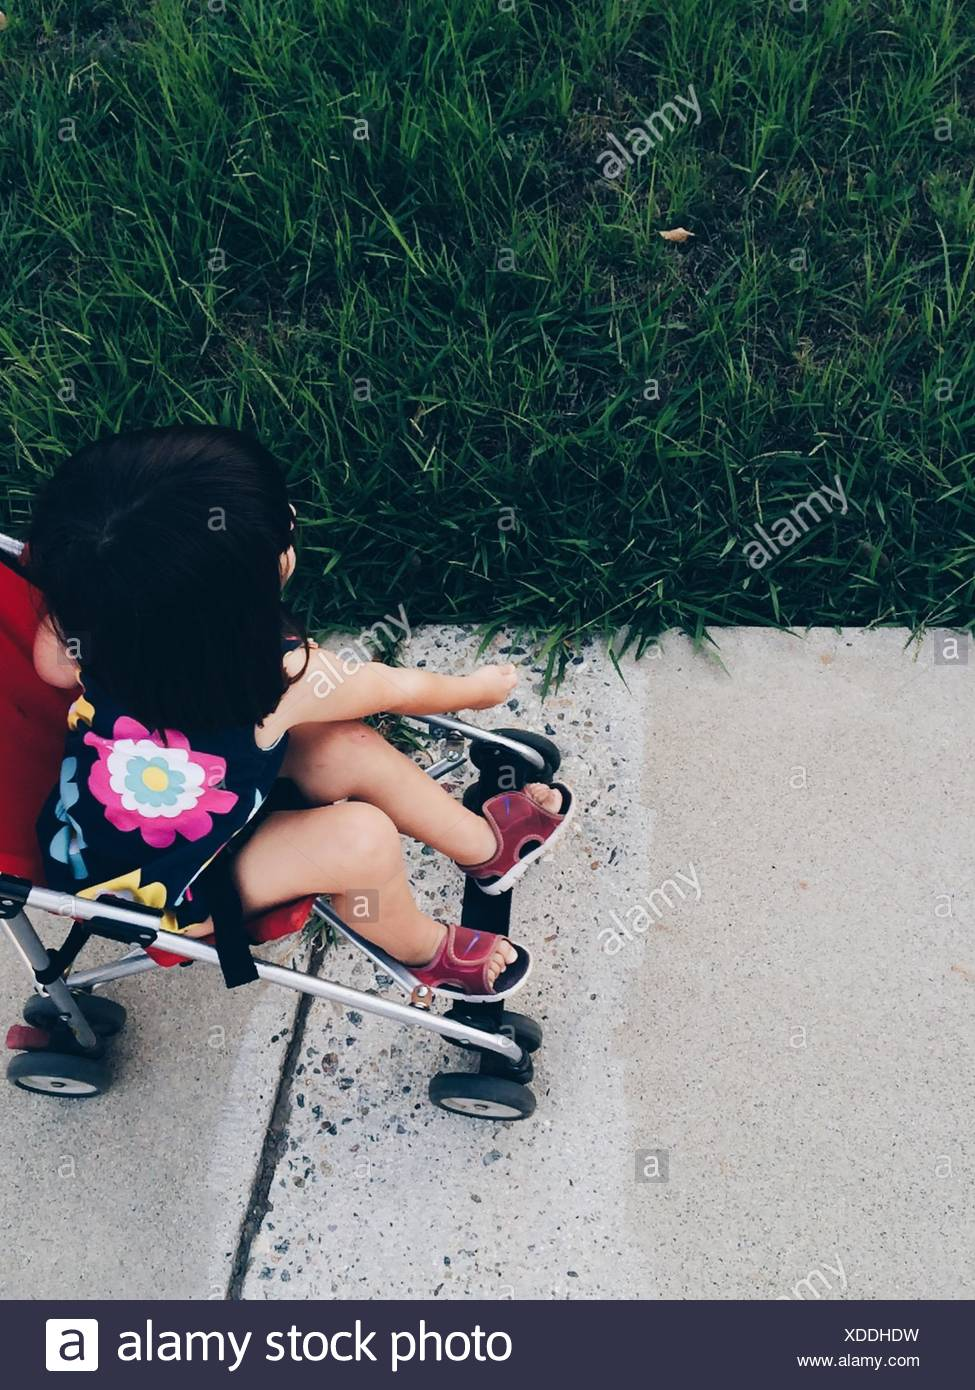 High Angle View Of Girl In Stroller At Park - Stock Image